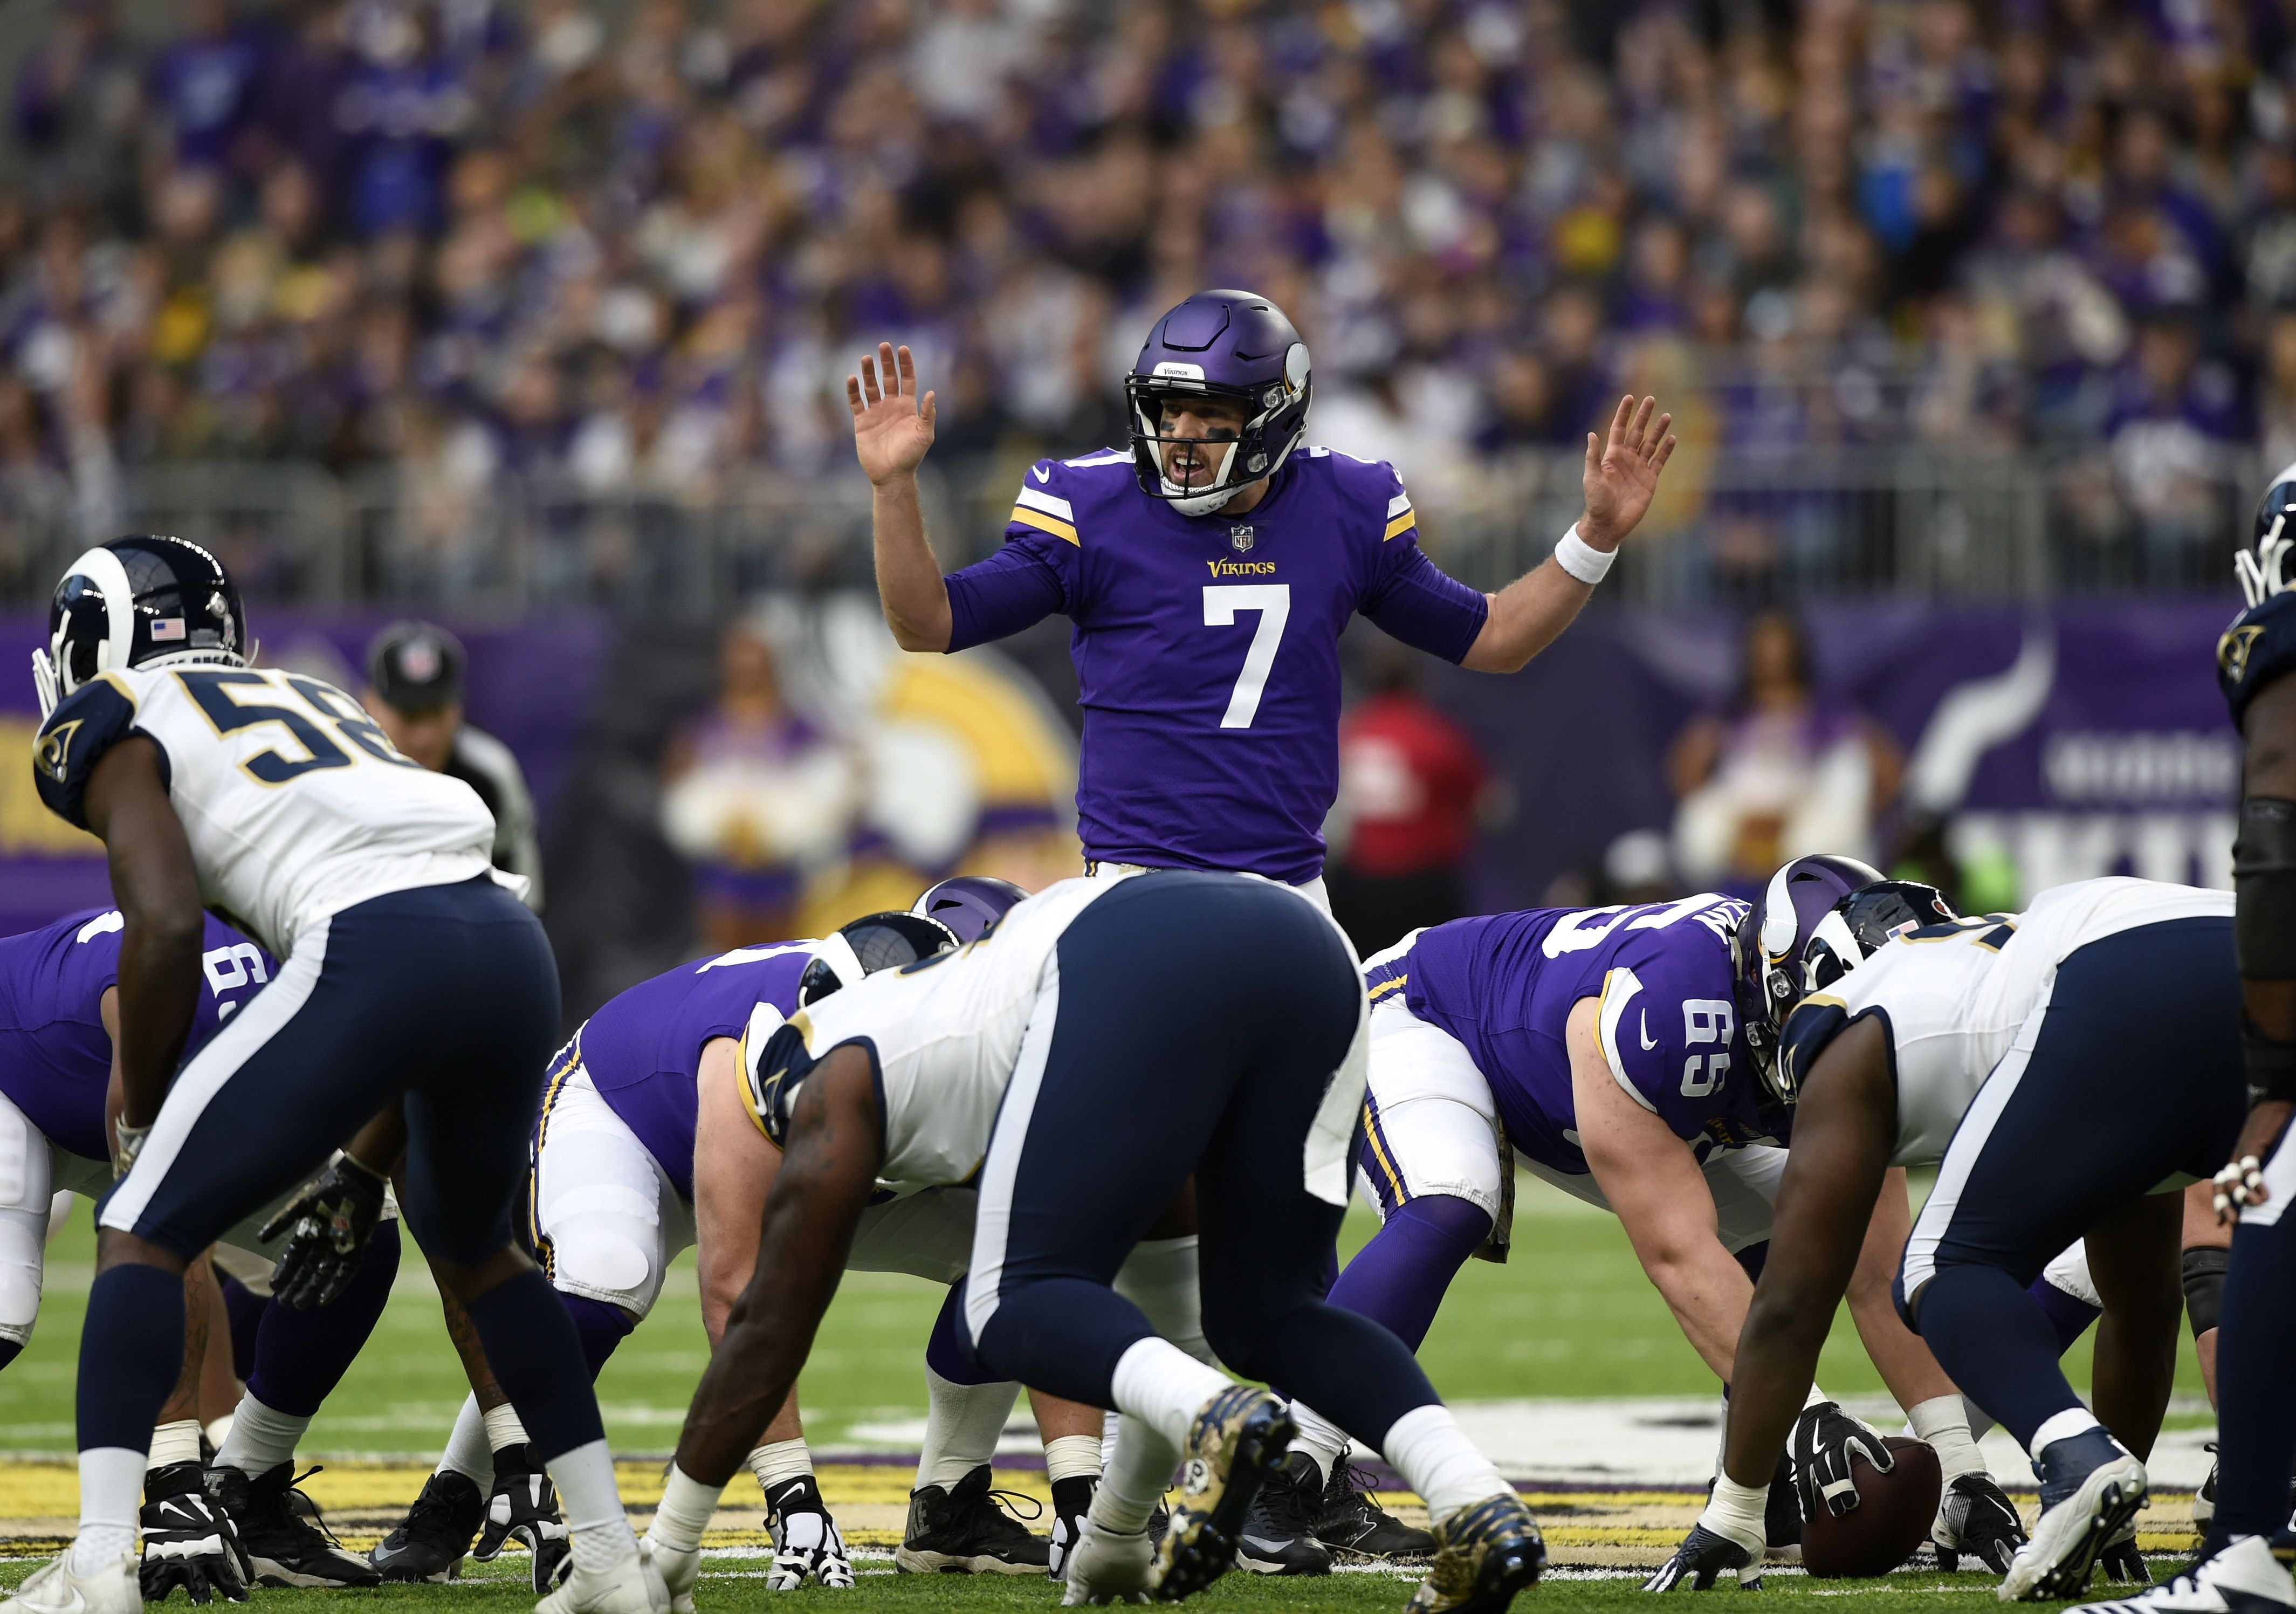 Keenum named one of the NFL's top players for November performance